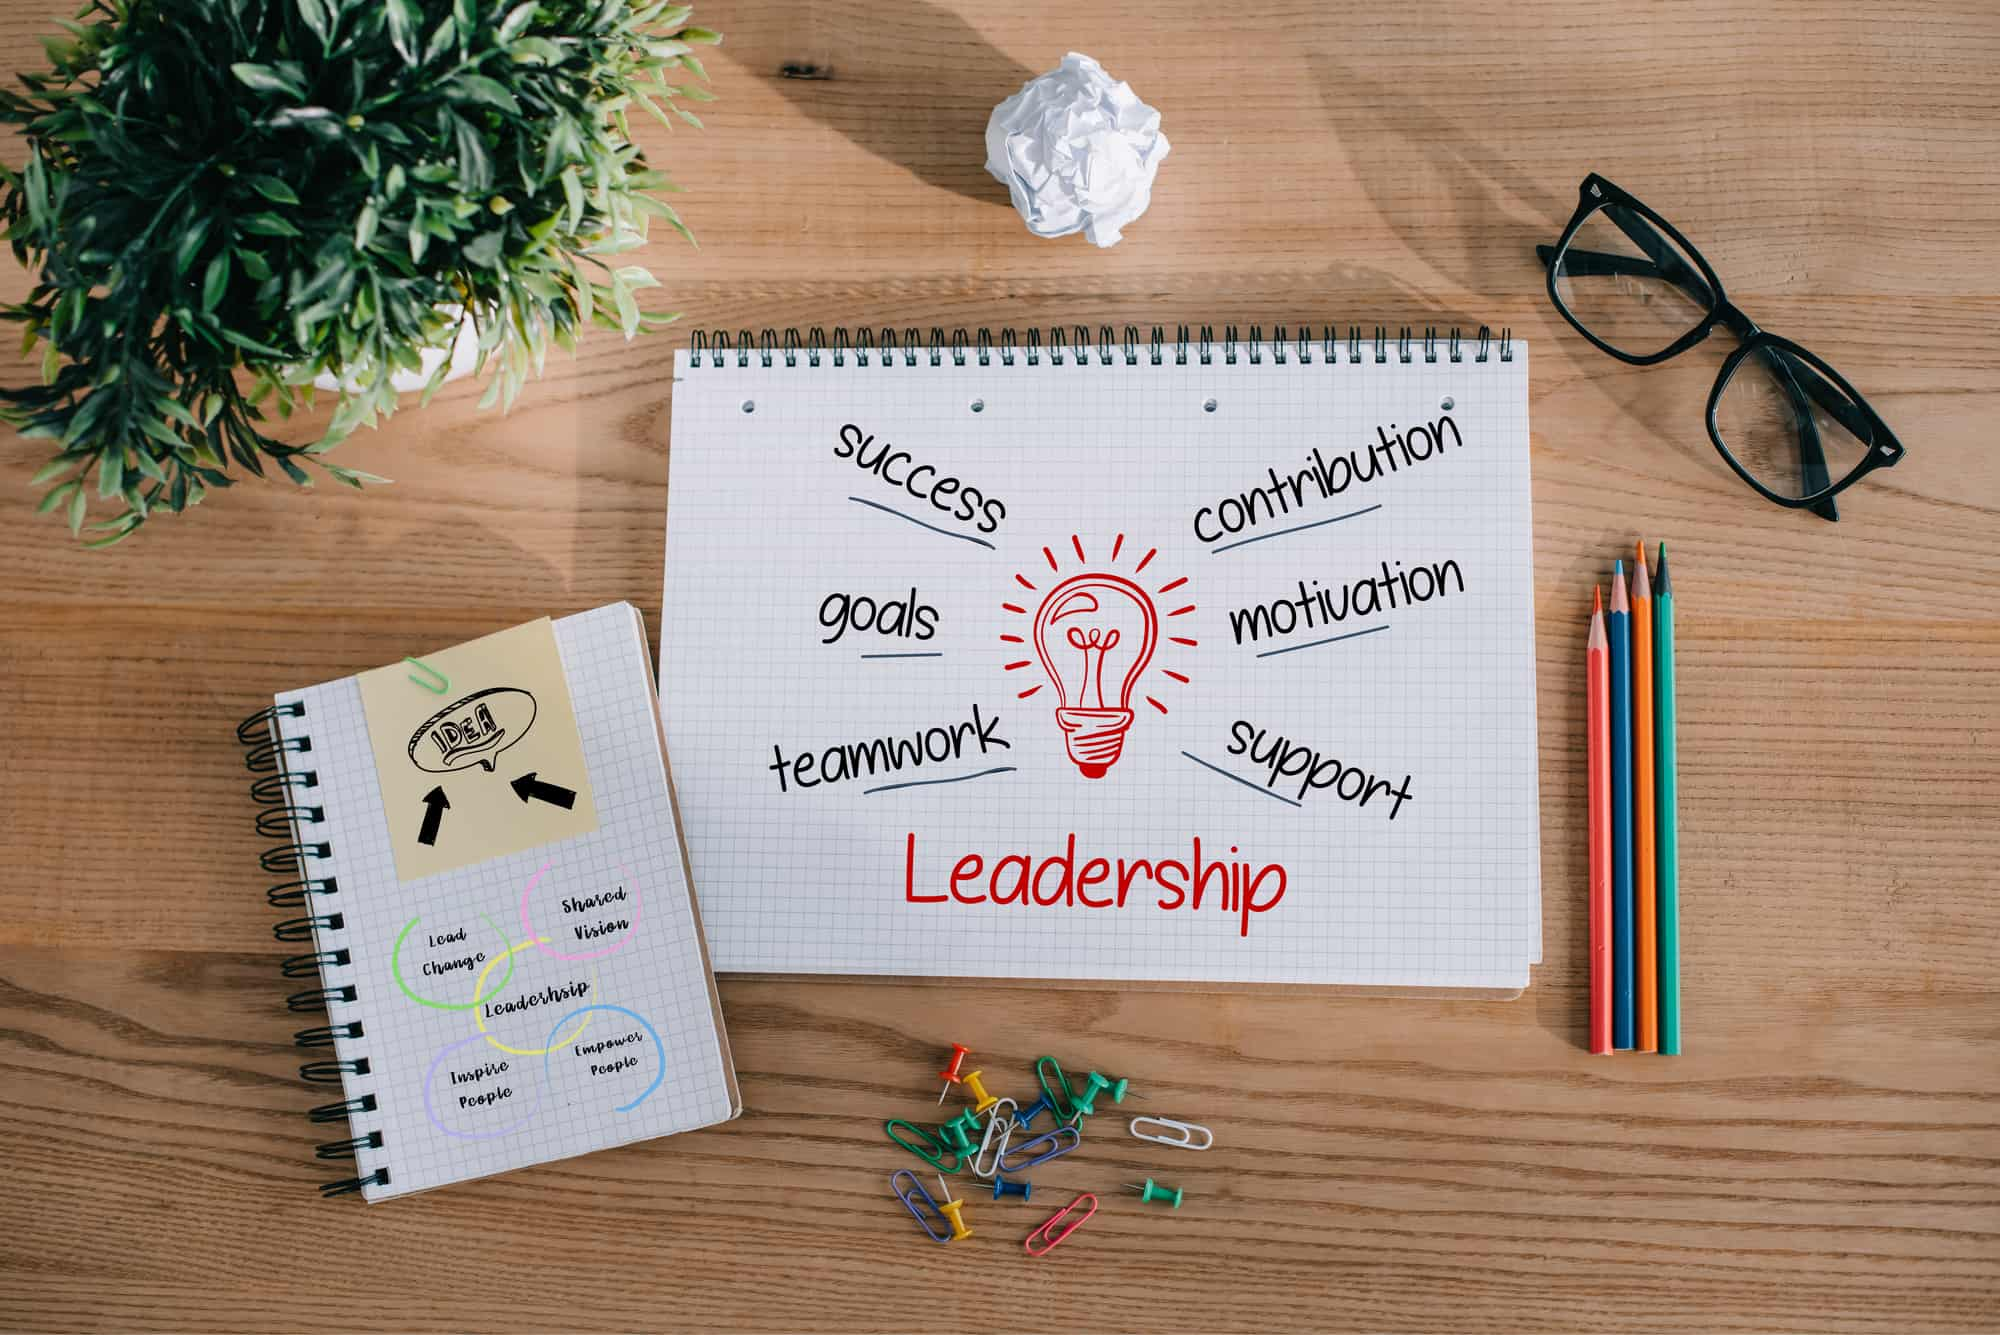 3 metrics to determine if an executive has the right leadership skills